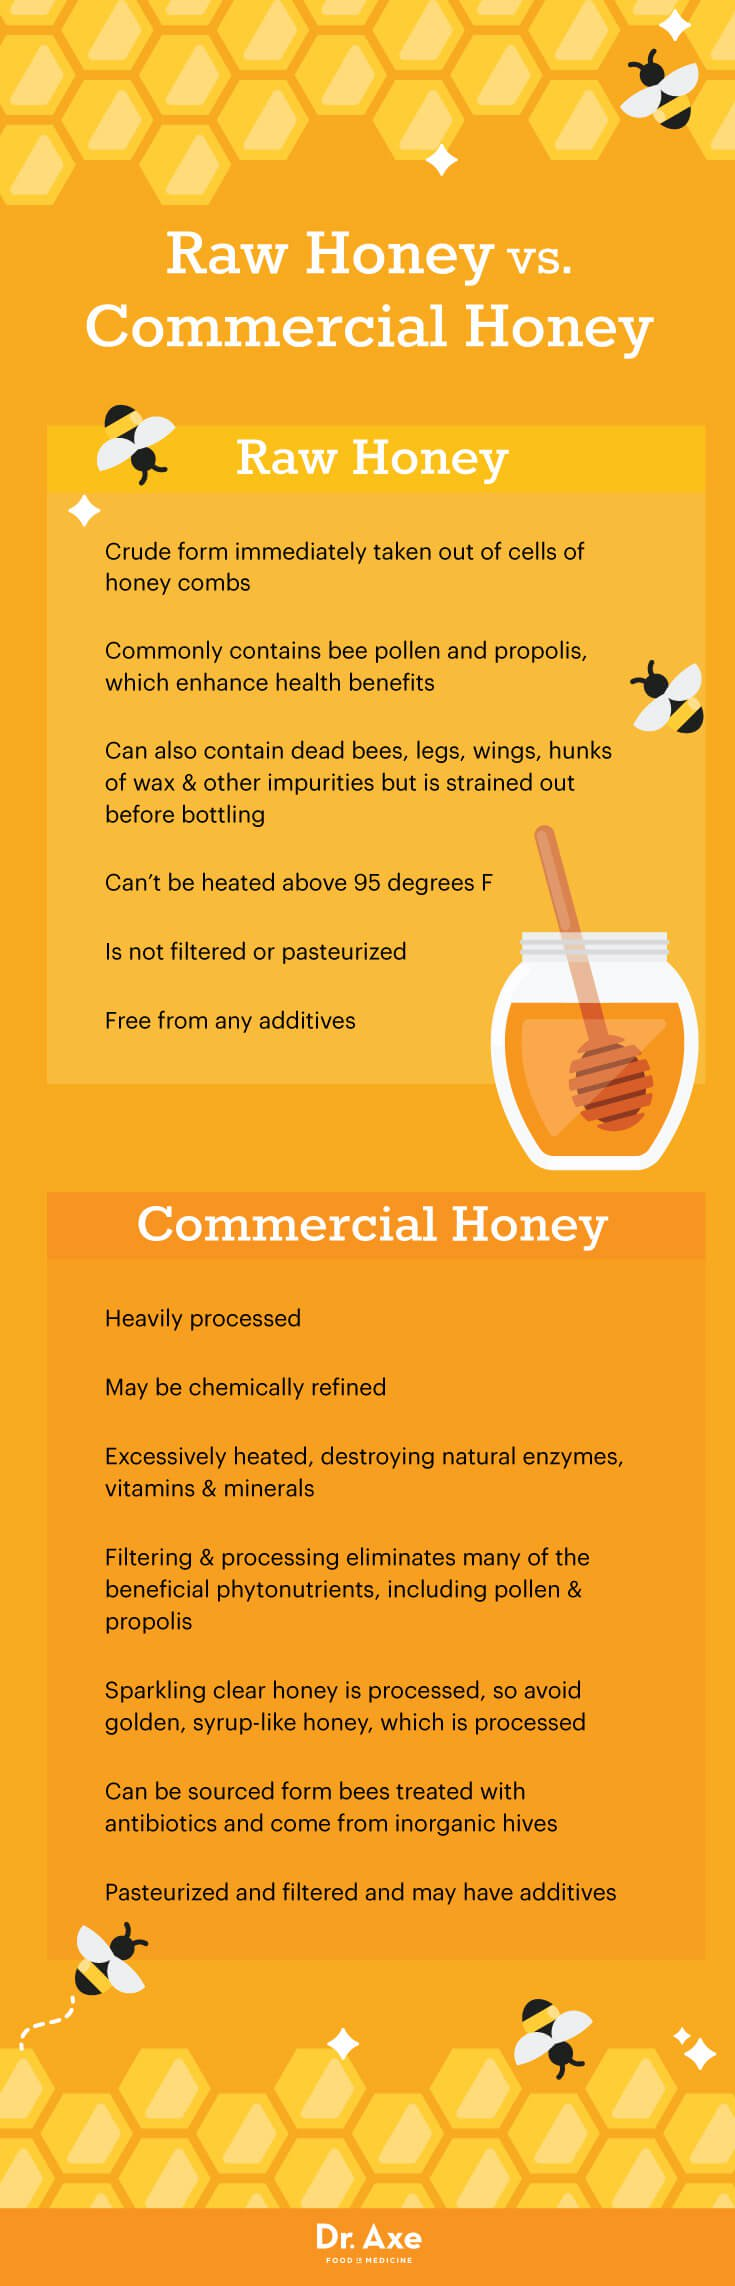 raw honey versus commercial honeydr axe - operation